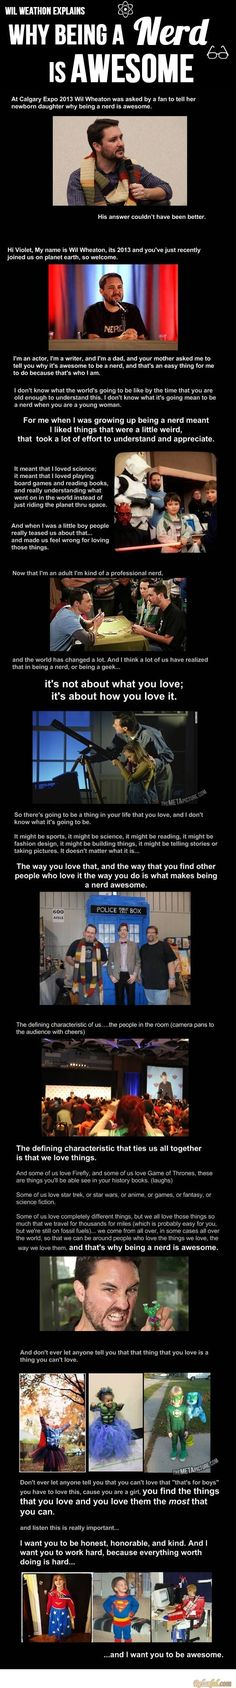 Wil Wheaton explains why being a nerd is awesome